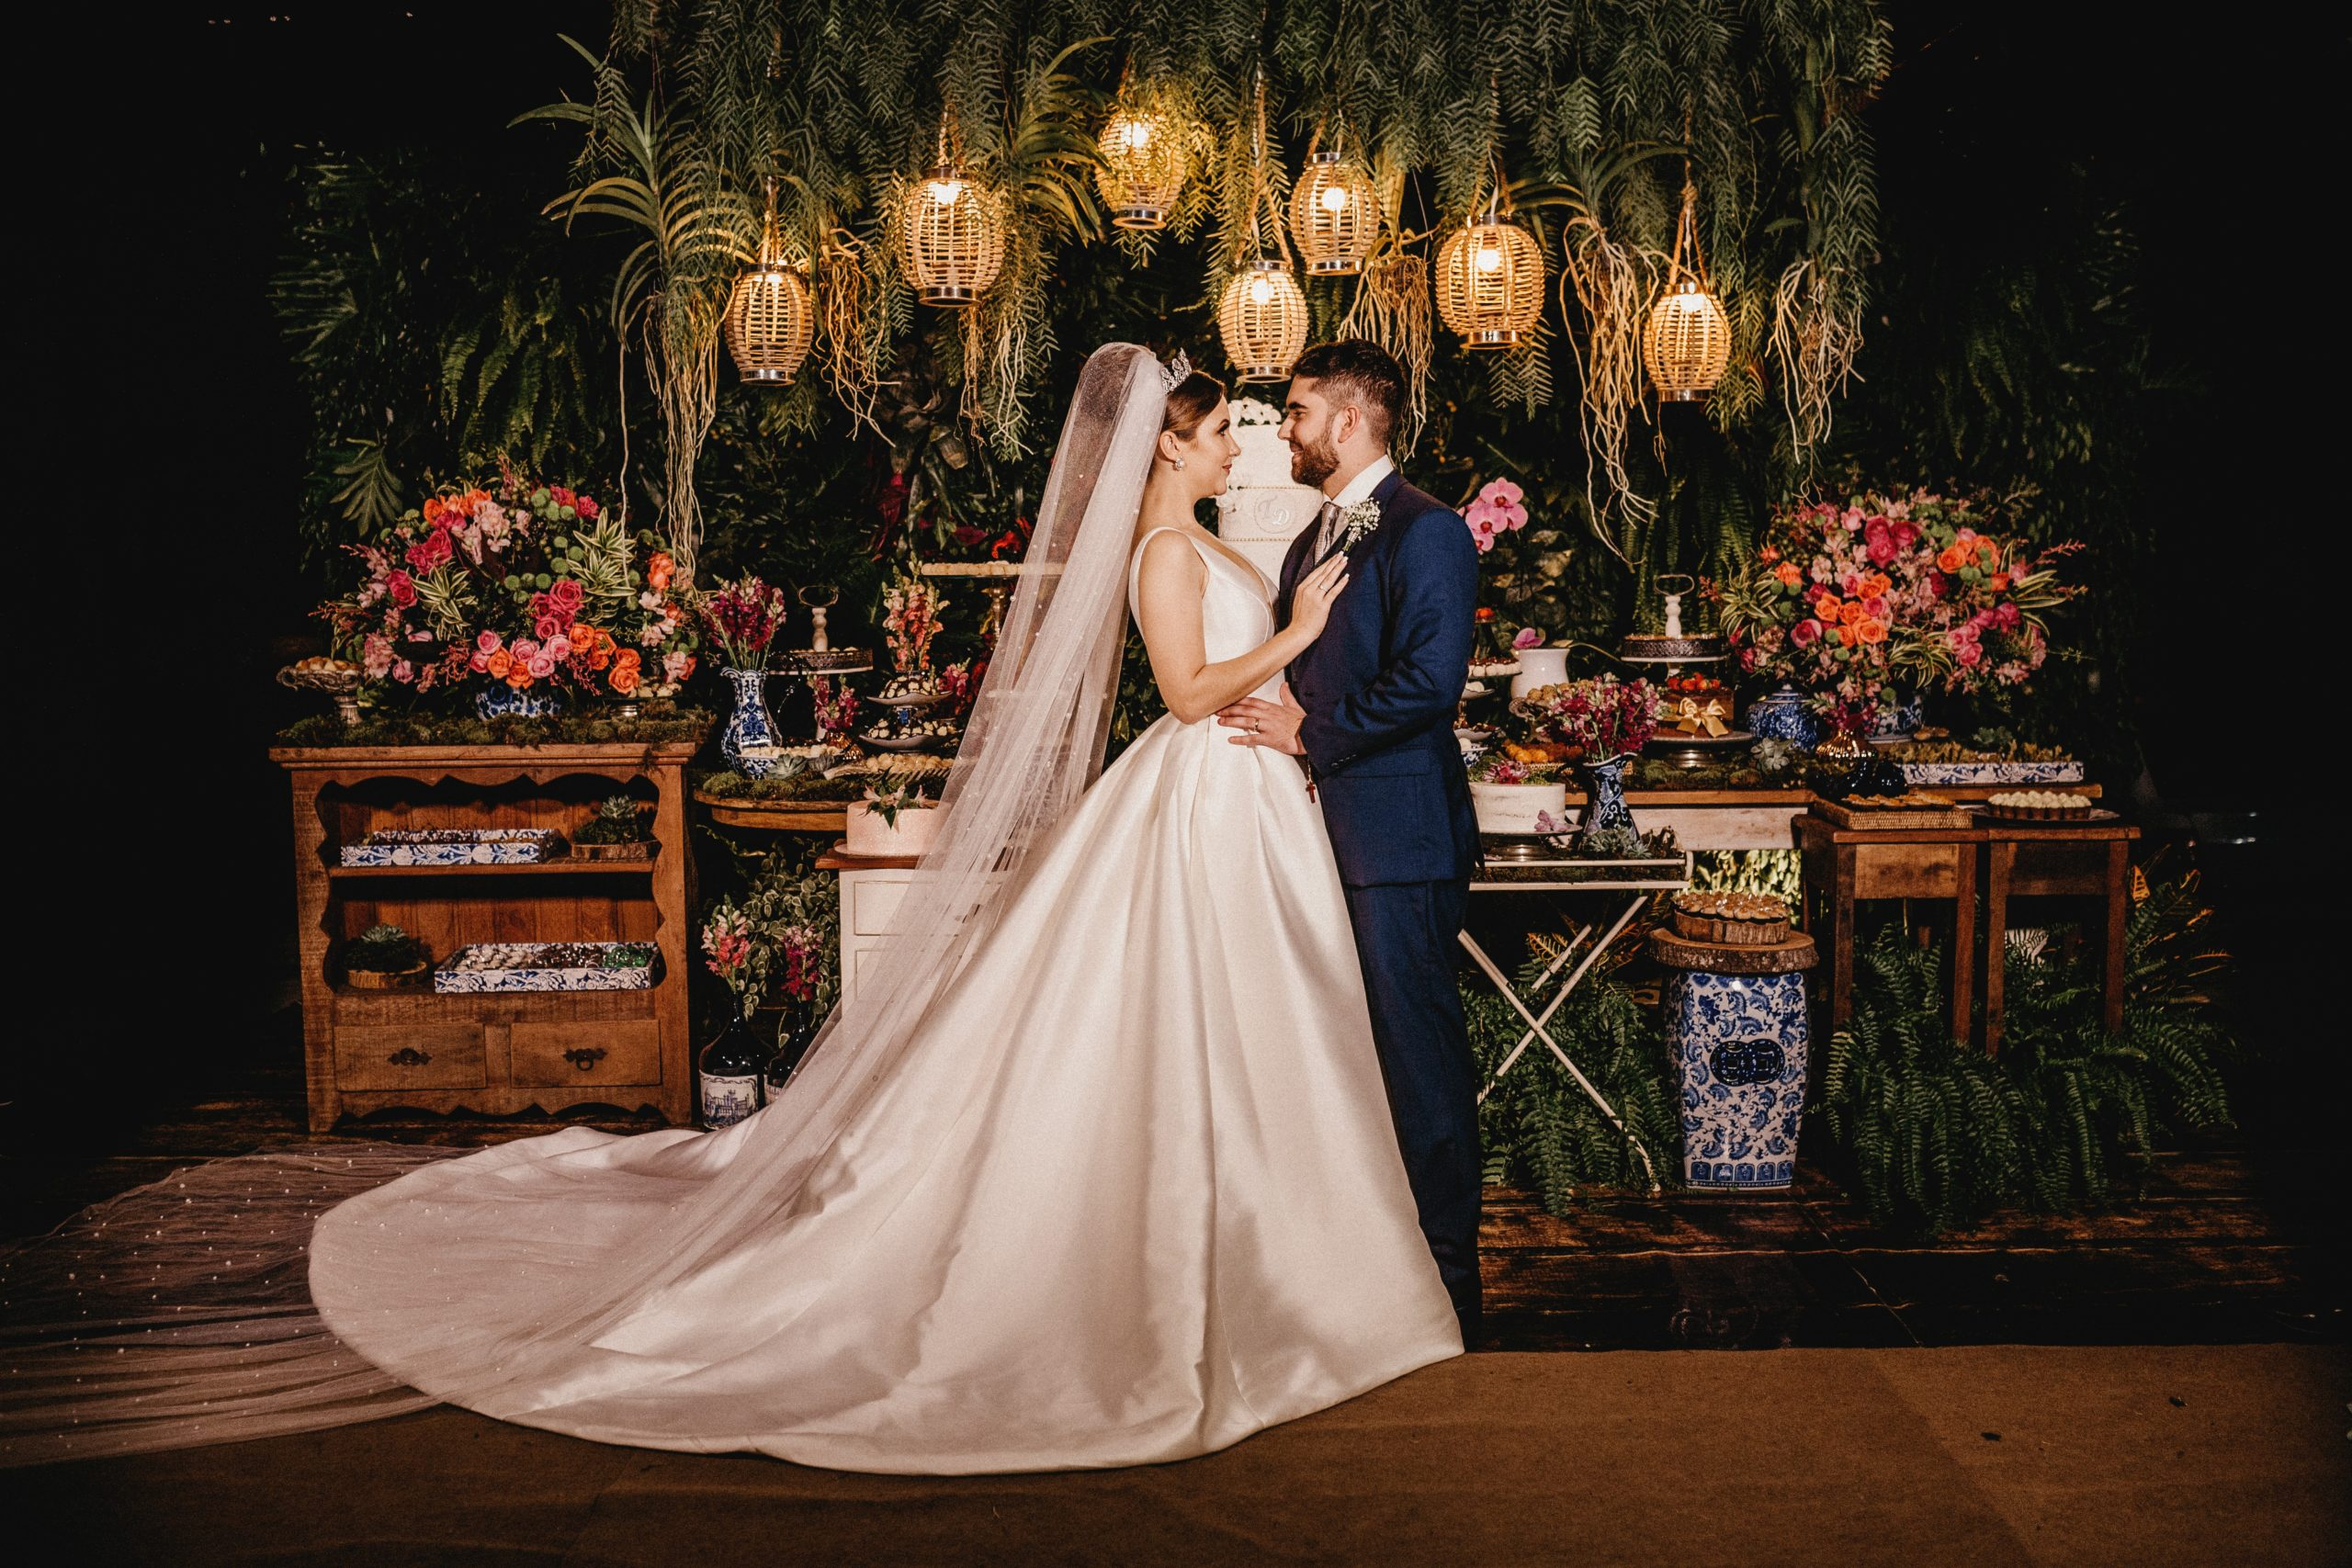 Can A Wedding Planner Design Your Wedding?